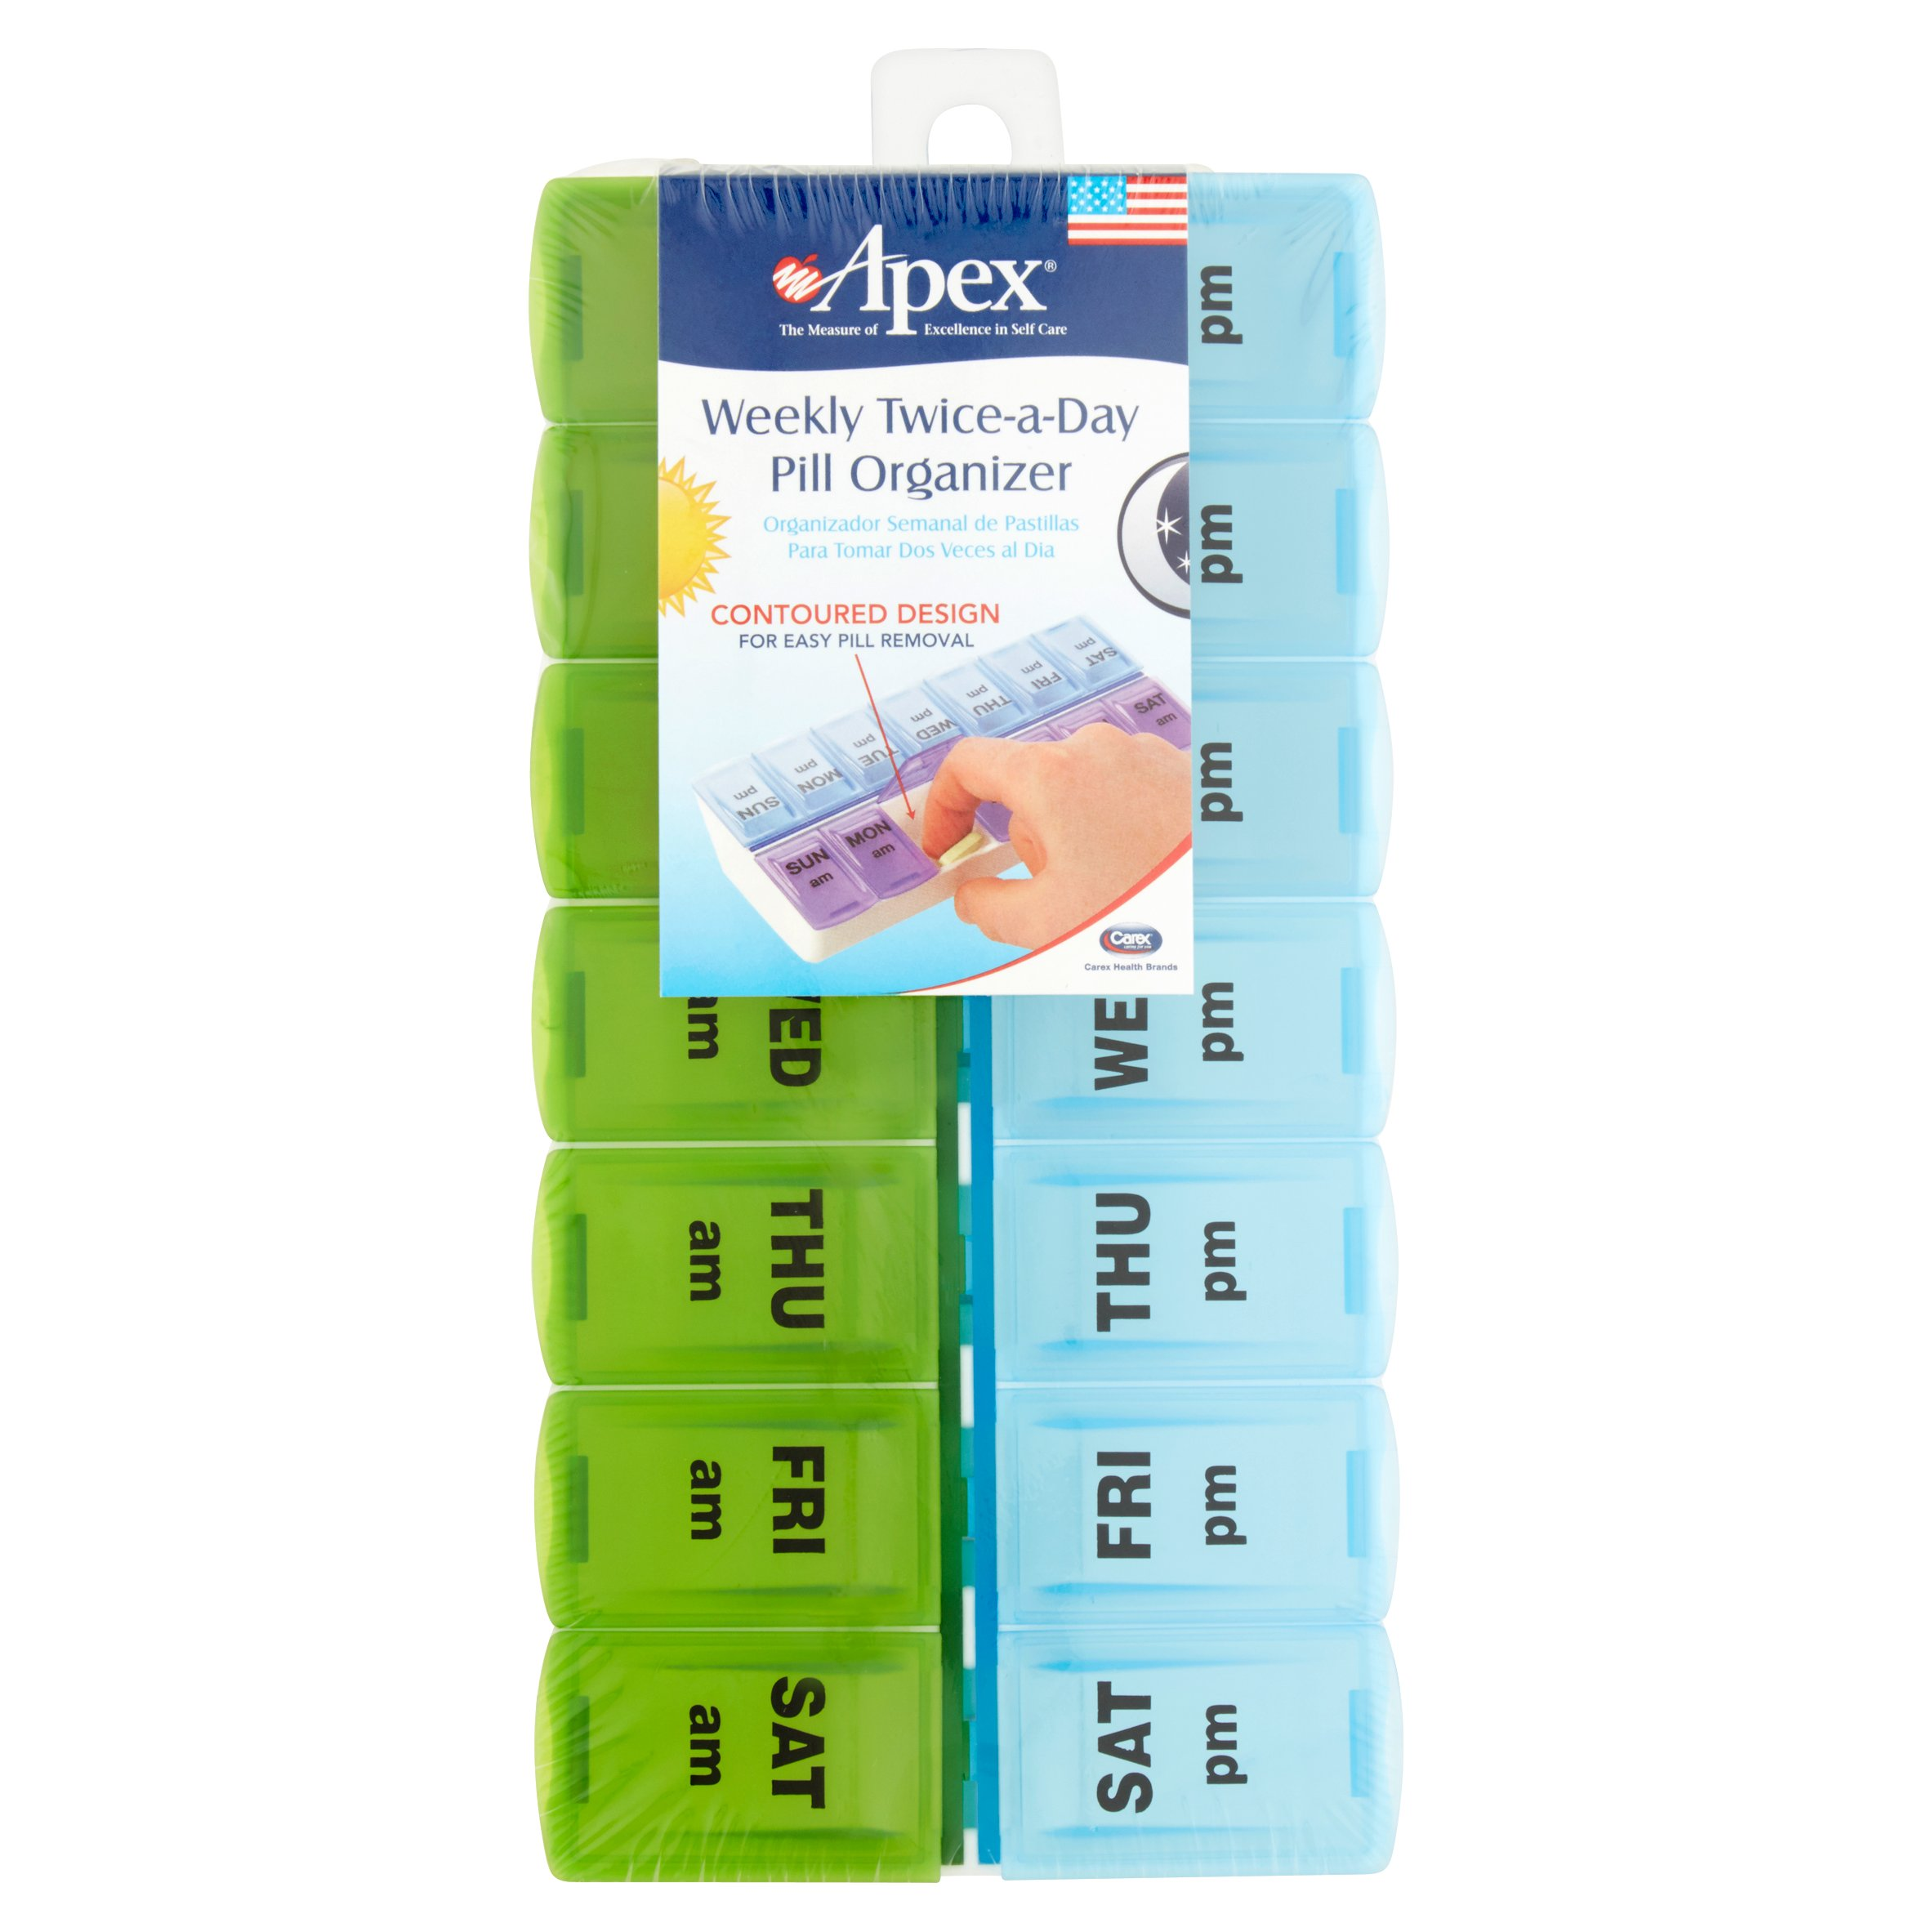 Apex Twice A Day Pill Organizer